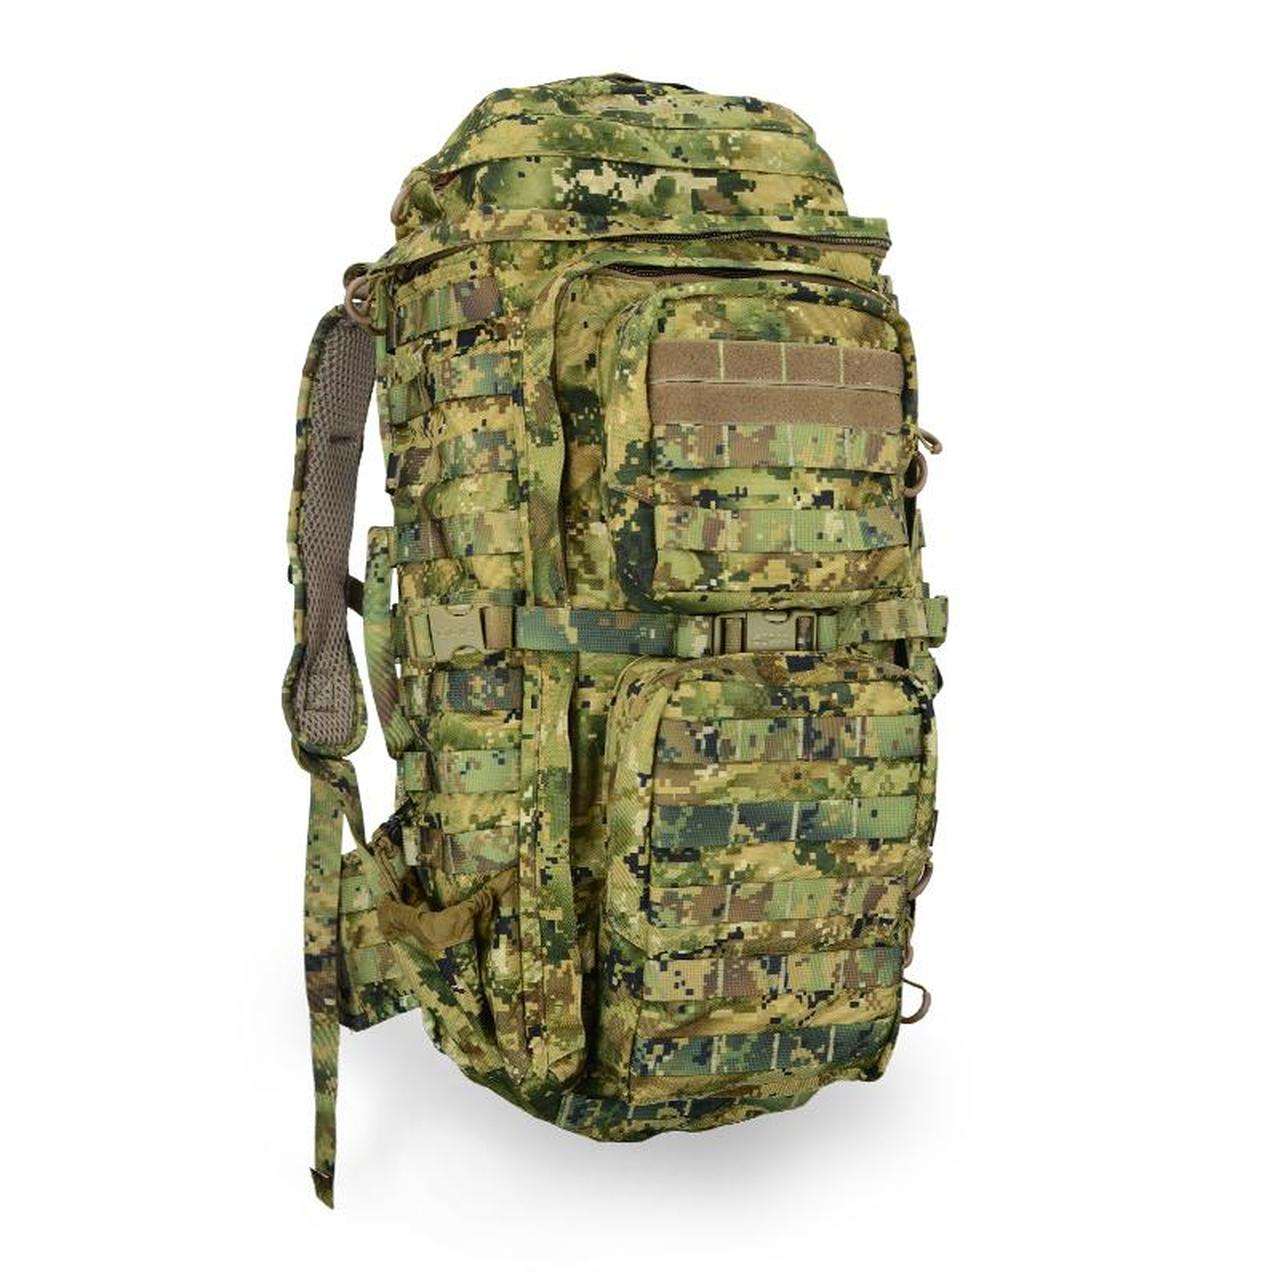 Best Camo Eberlestock FAC Track Pack for elk hunt